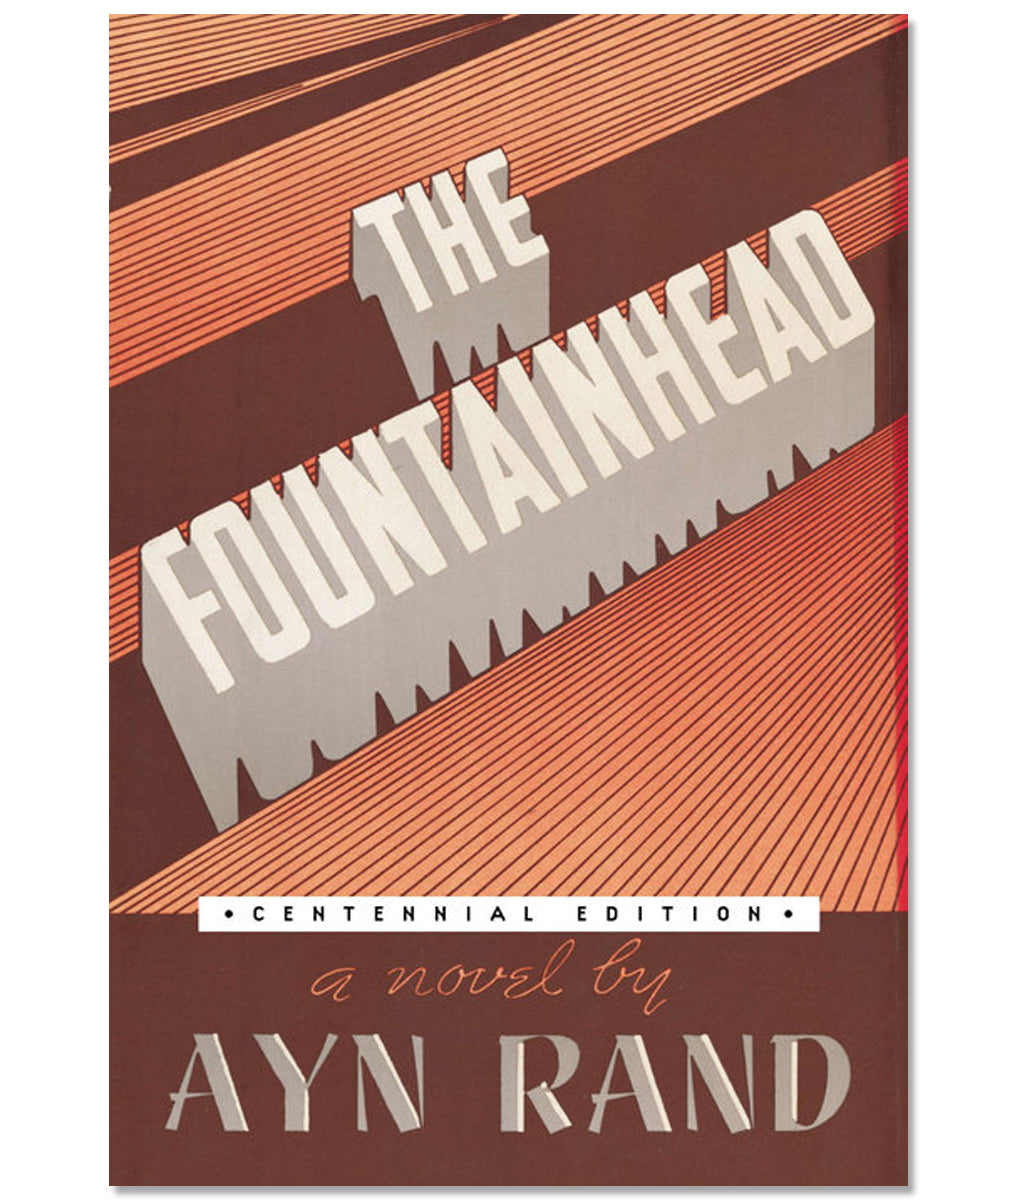 The Fountainhead Centennial Edition Paperback by Ayn Rand